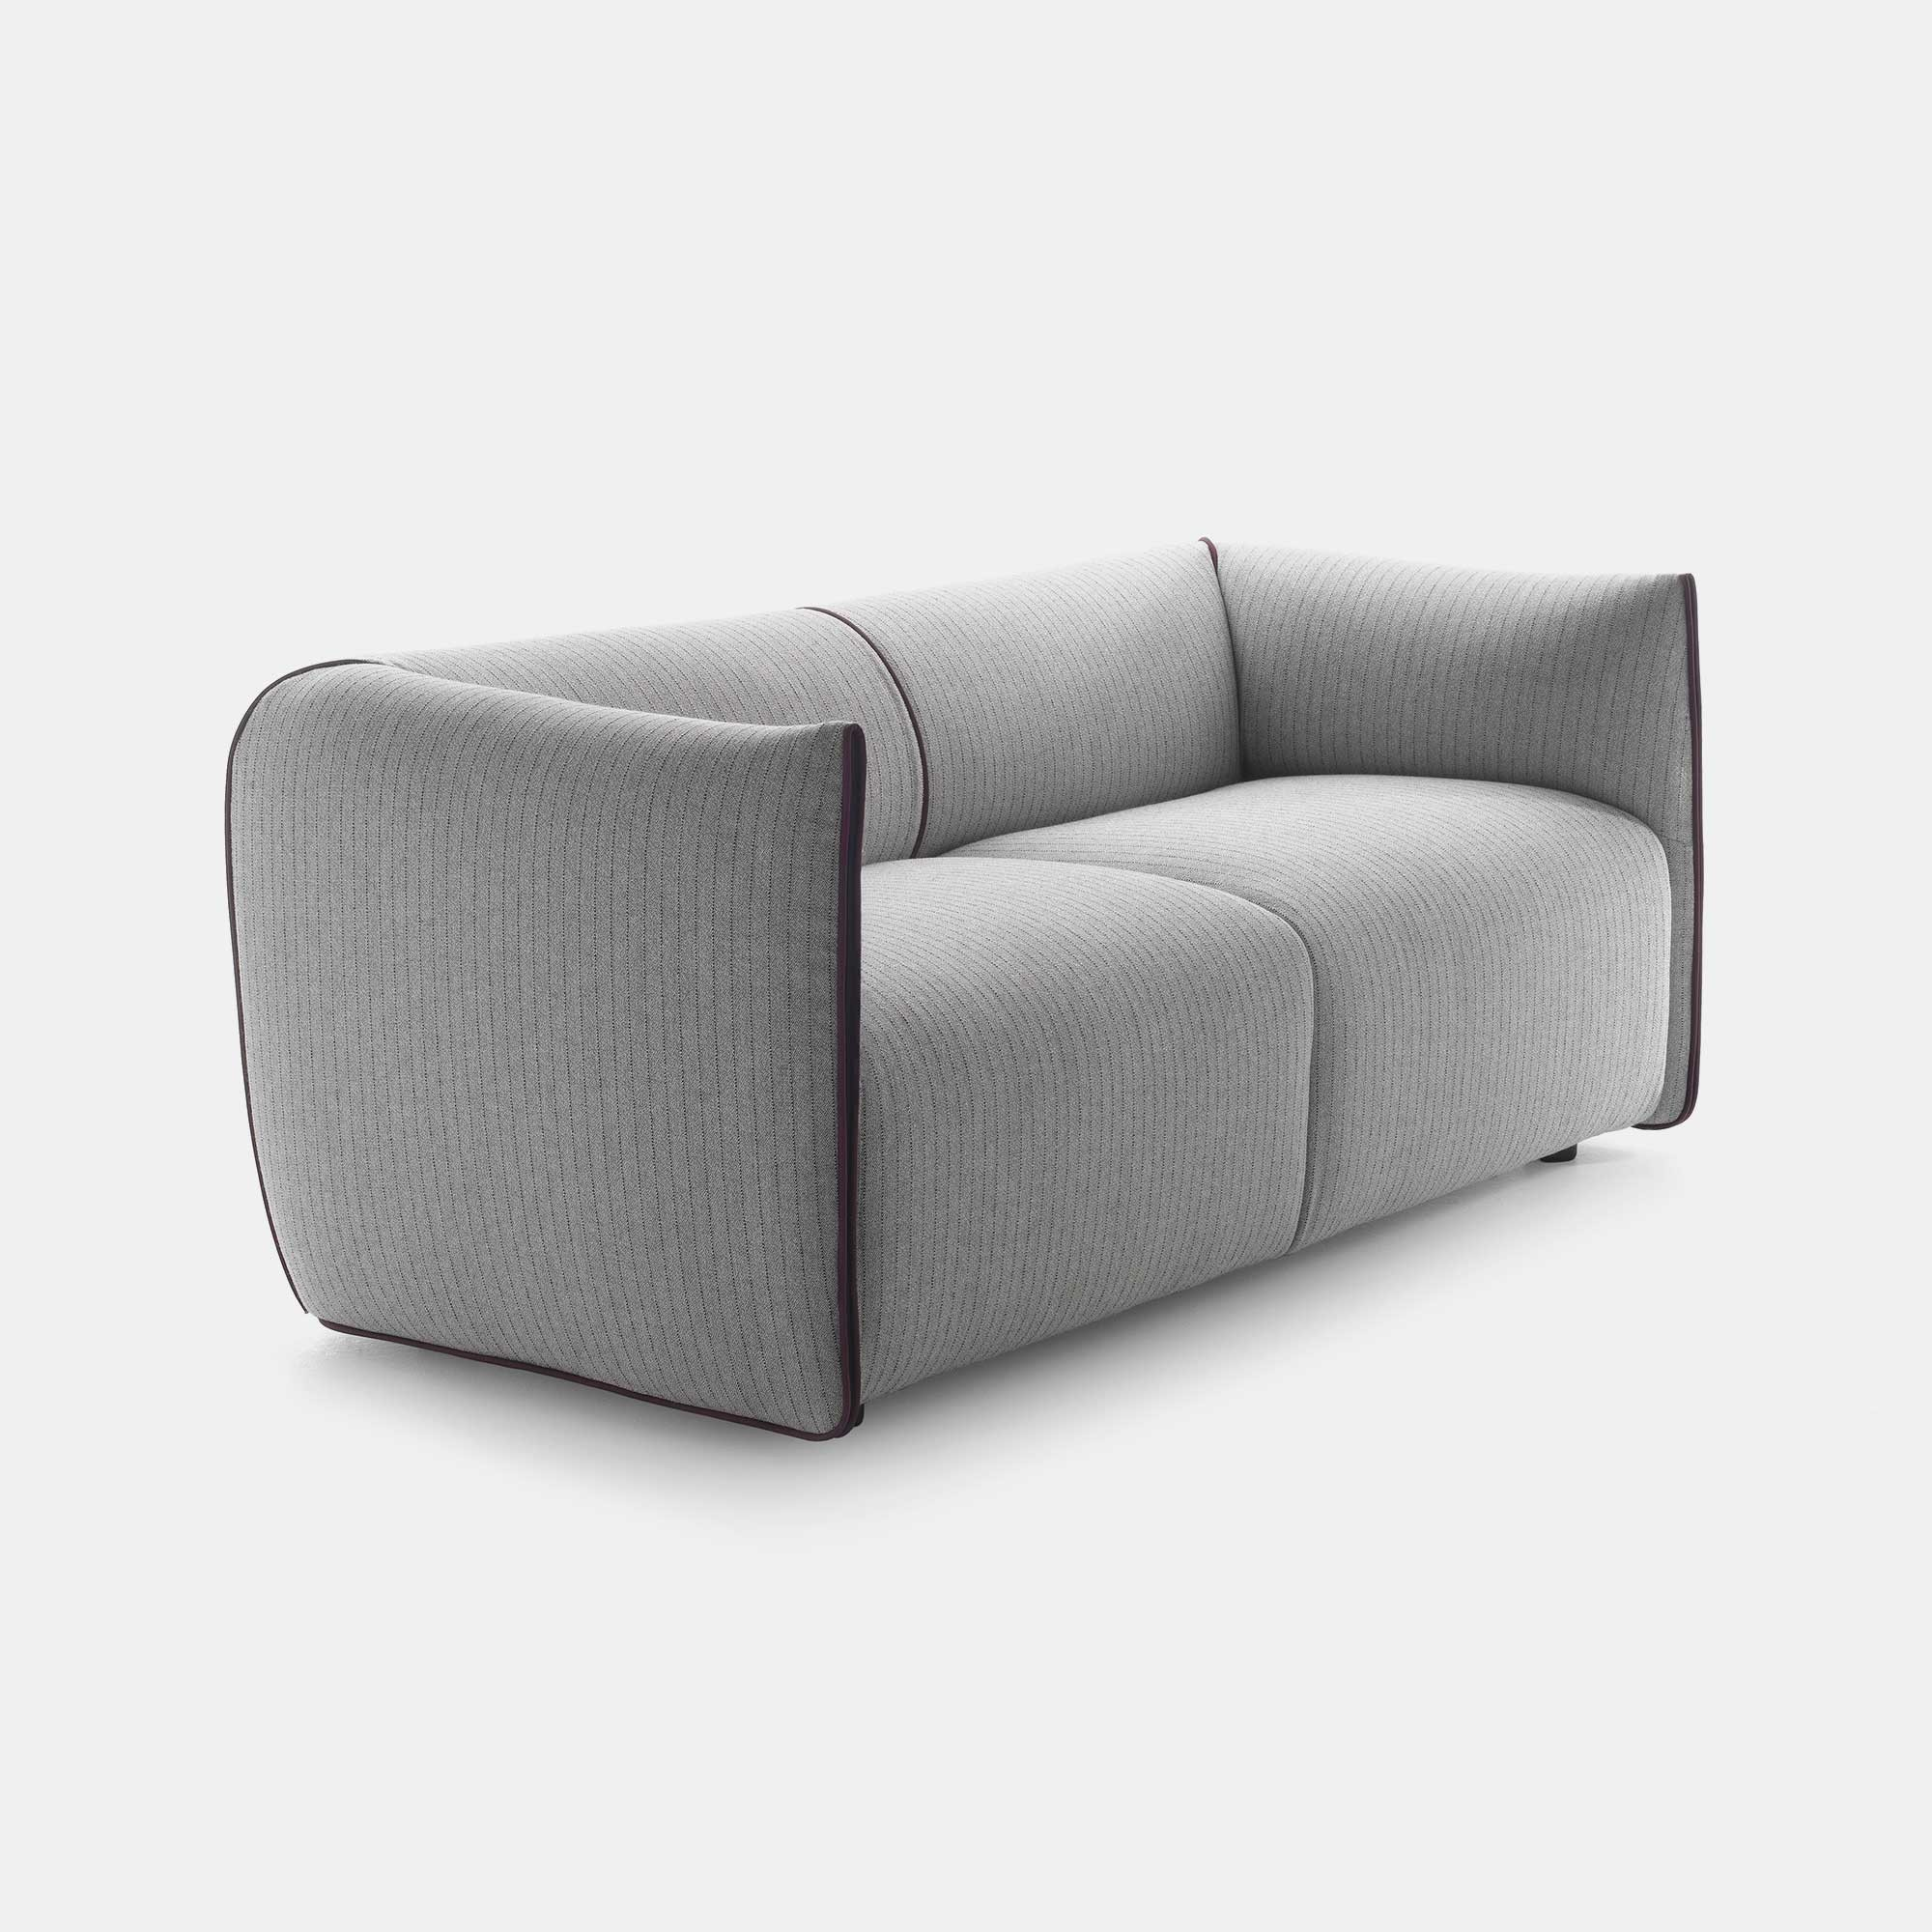 MIA collection of sofas armchairs and poufs MDF Italia